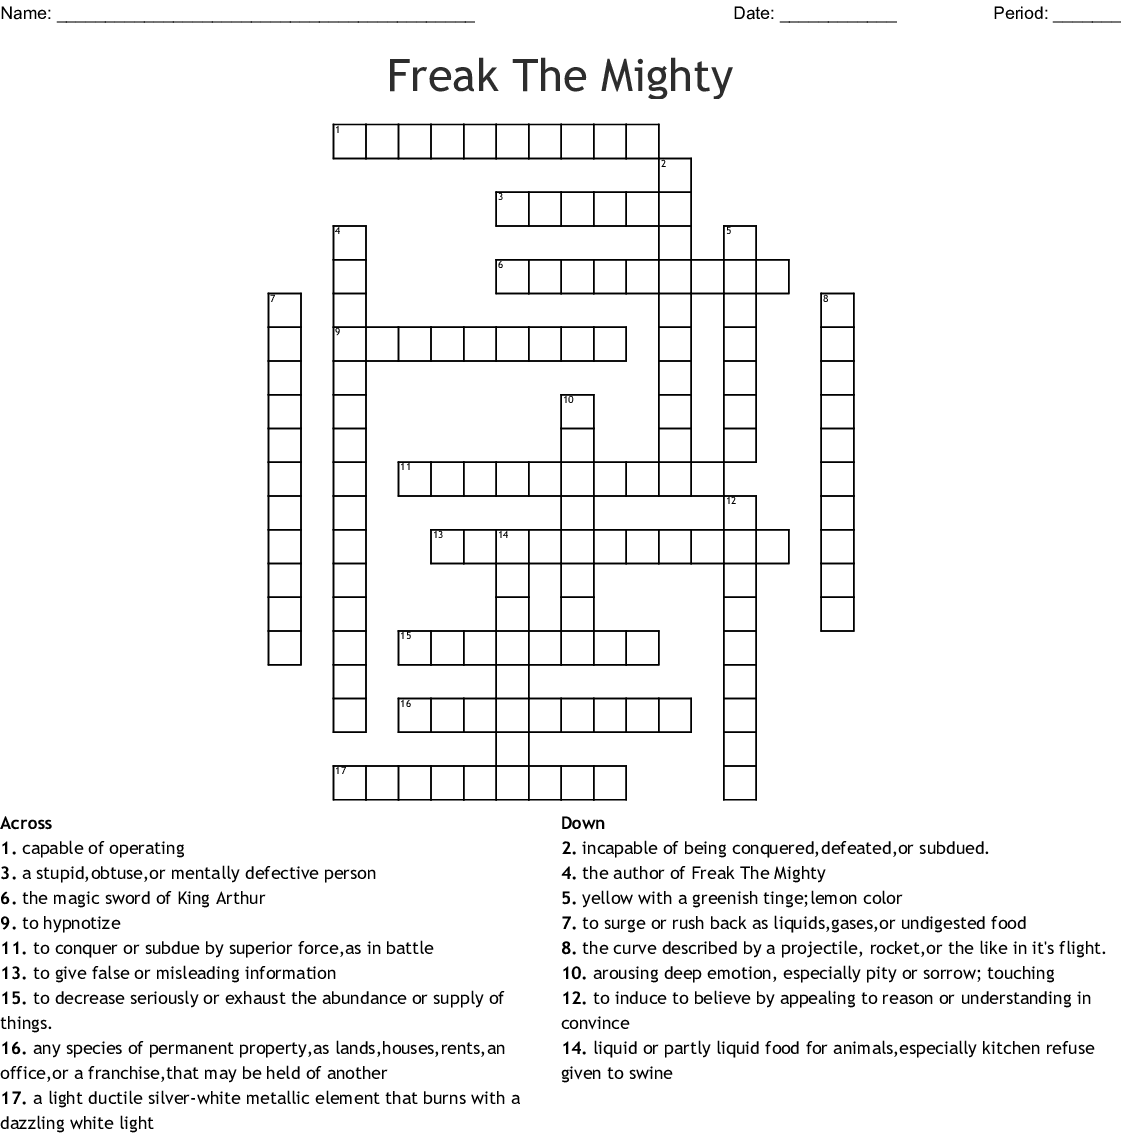 Freak The Mighty 5 7 Vocabulary Crossword